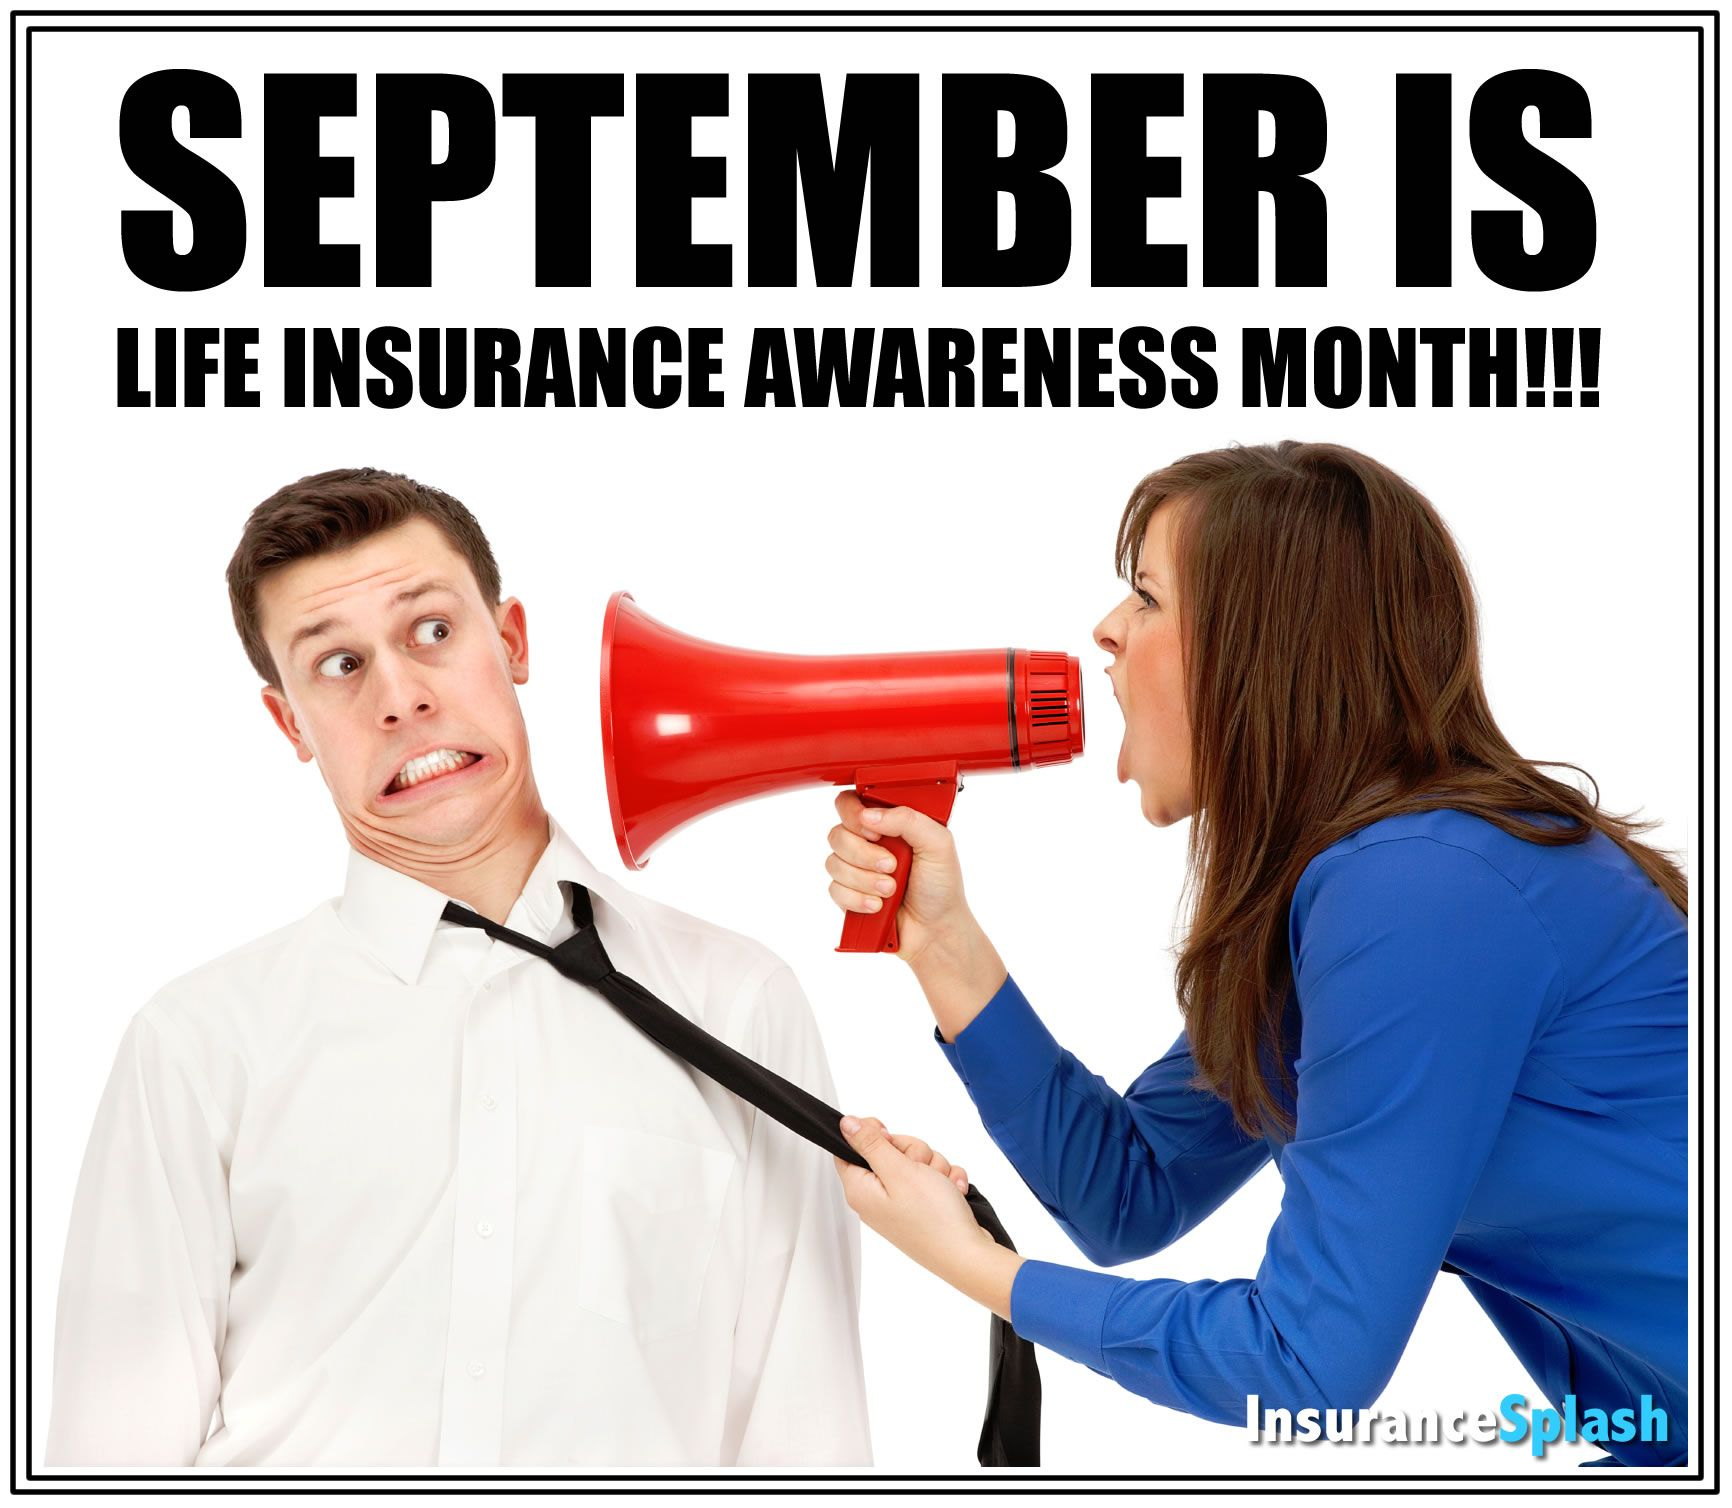 Just in case you were not aware... Life insurance